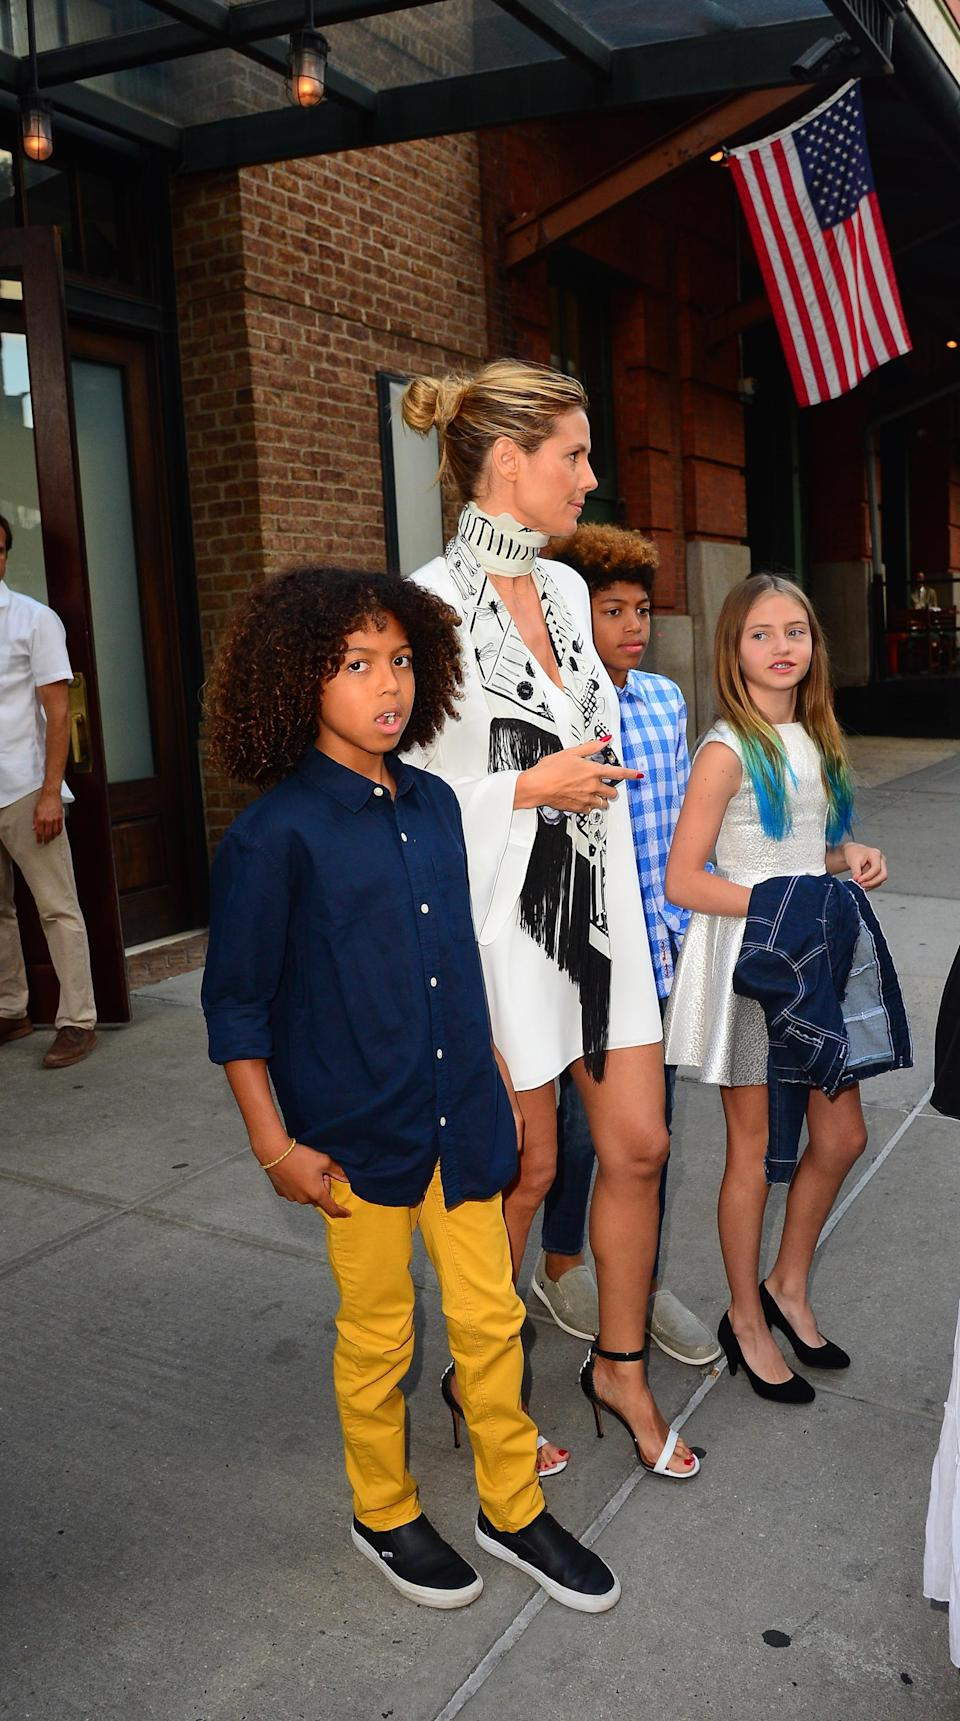 Heidi Klum is defending letting her daughter Leni (pictured in 2016 with brothers Johan and Henry) wear high heels. (Photo: Raymond Hall/GC Images)